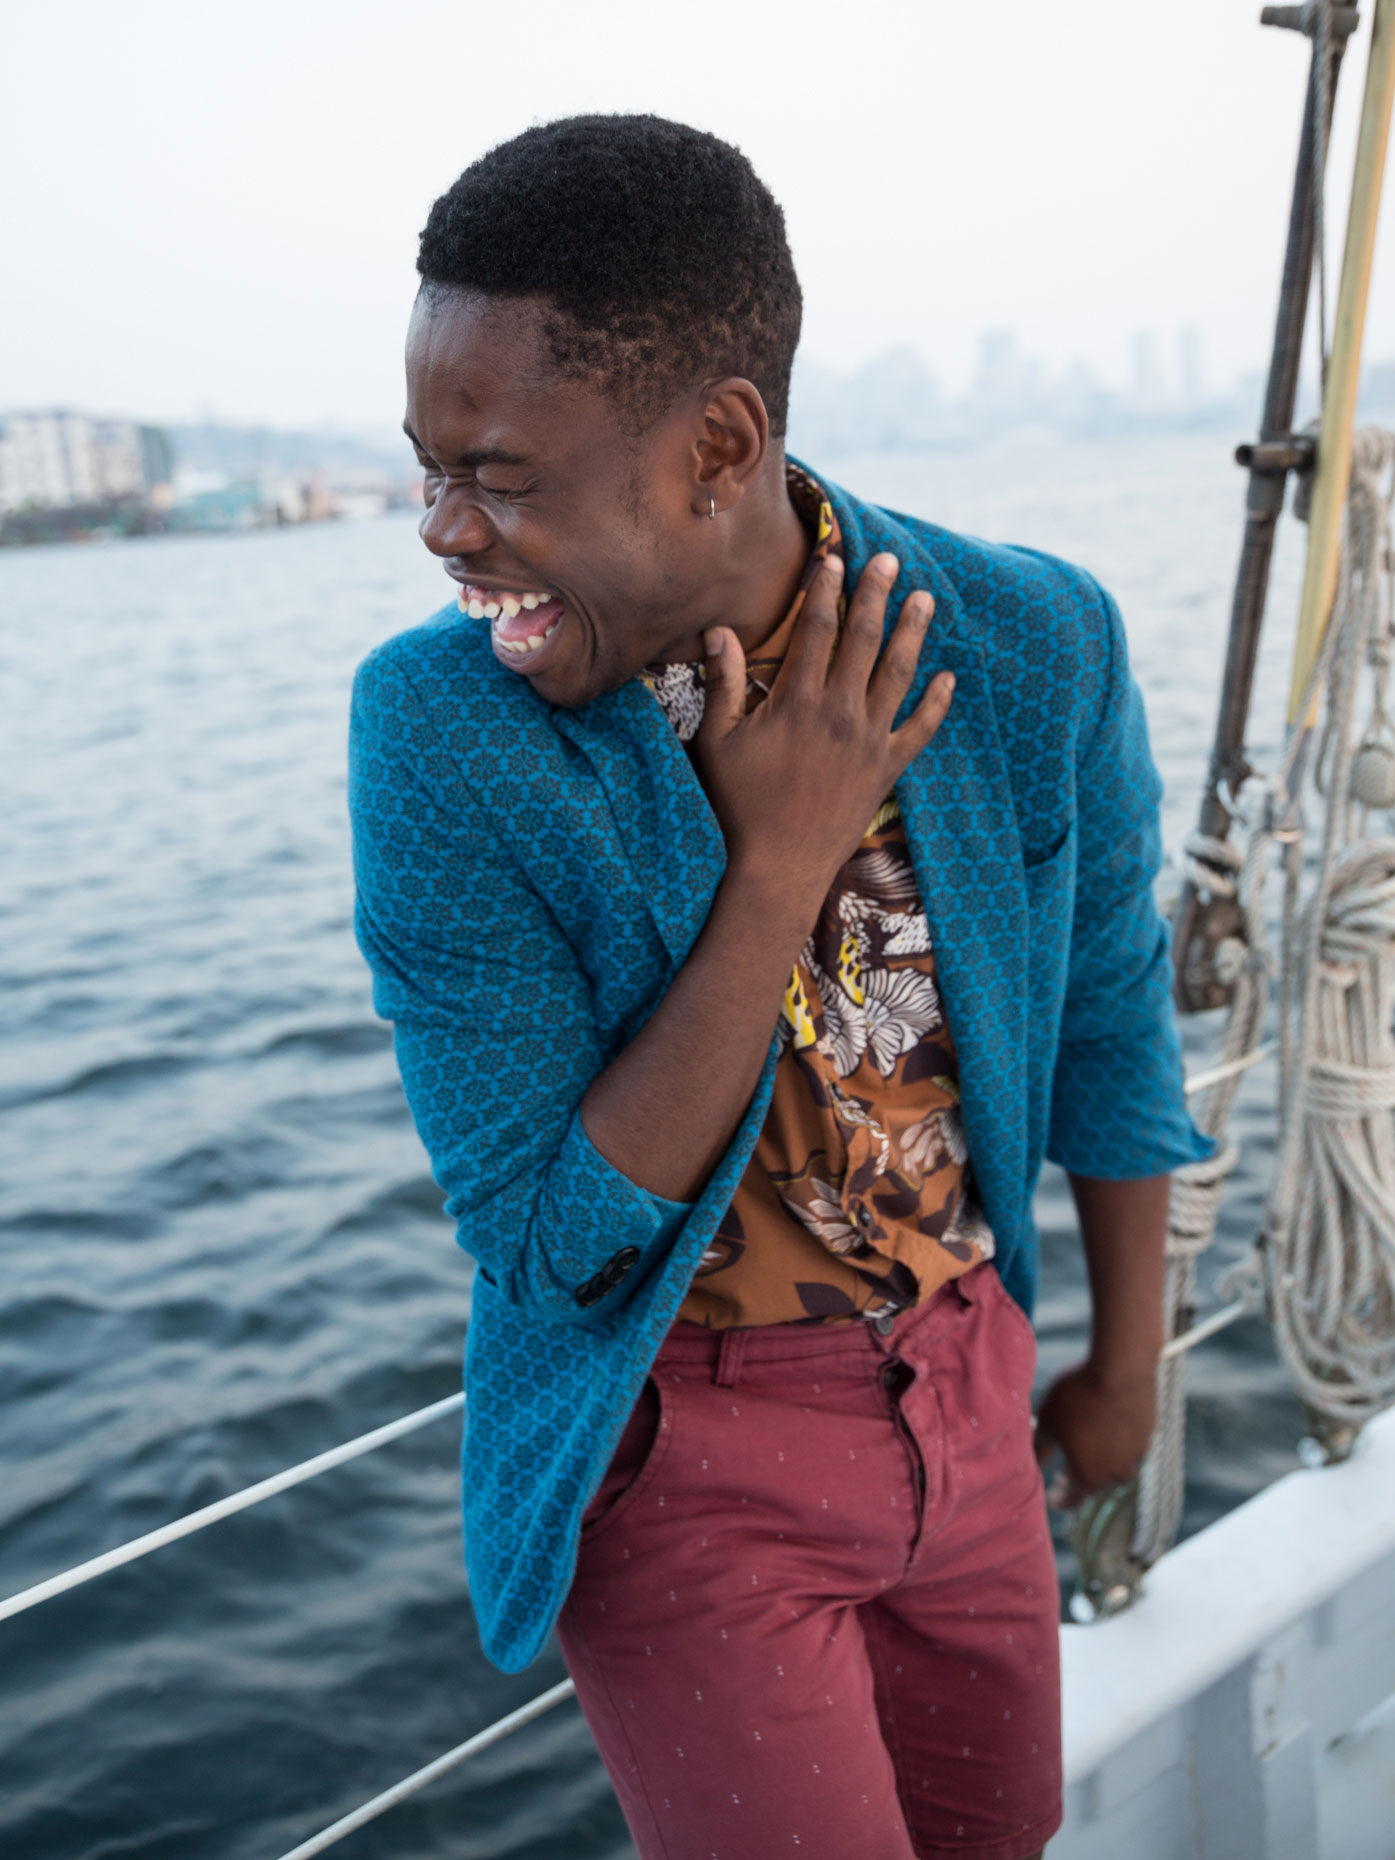 Laughing man on sailboat